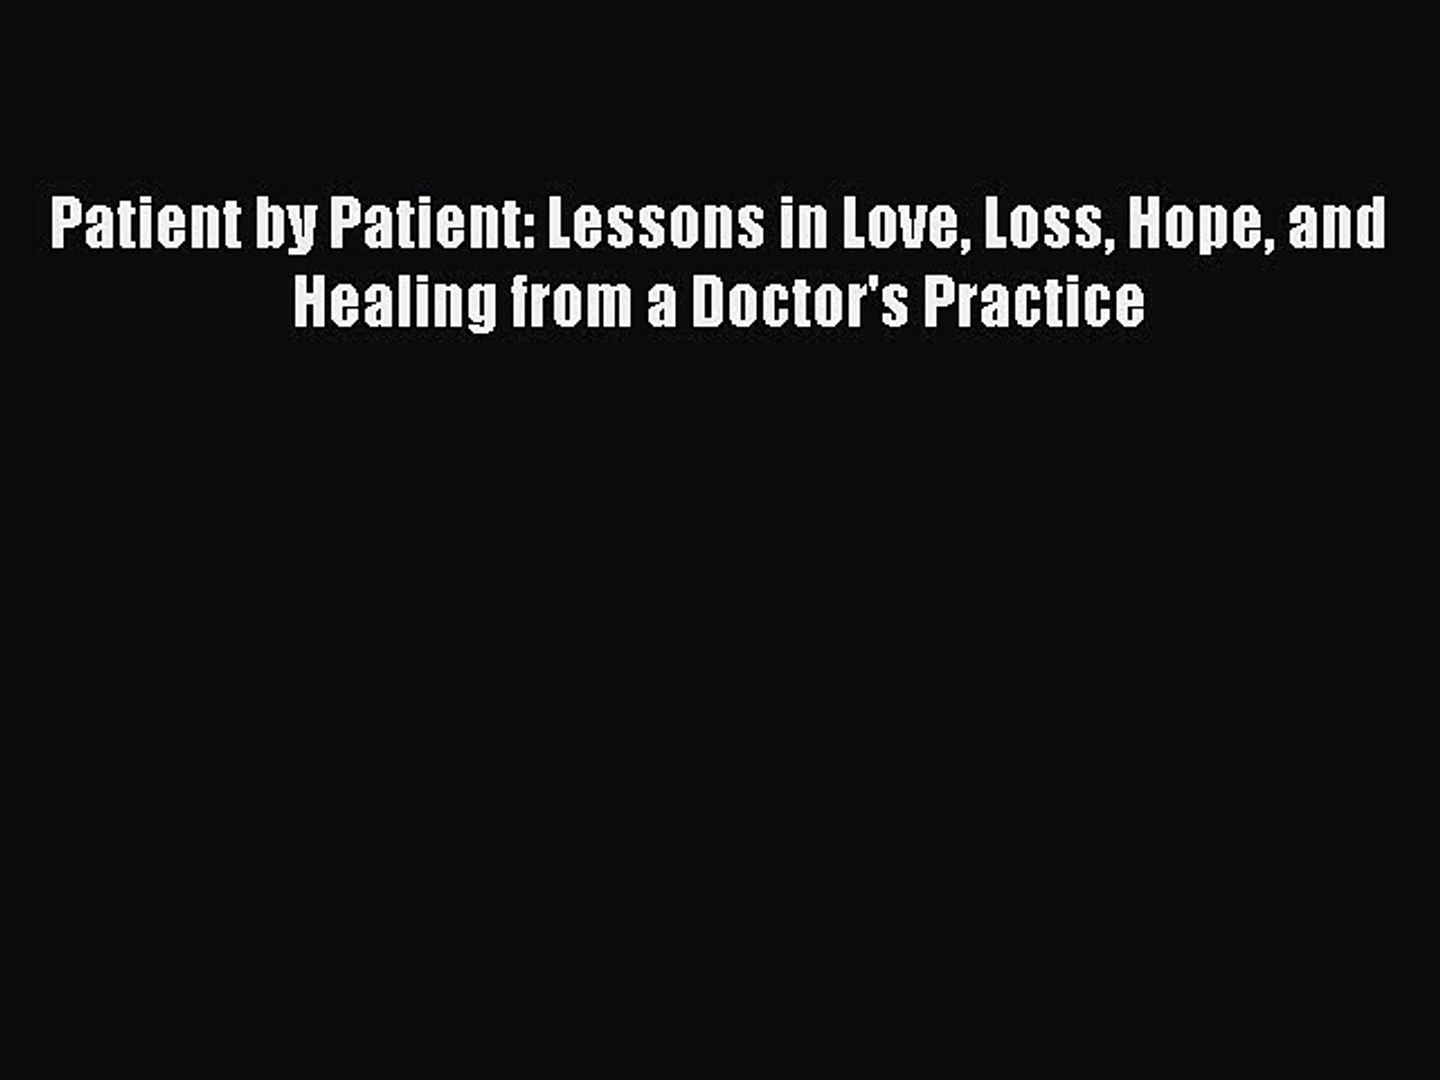 Patient by Patient: Lessons in Love, Loss, Hope, and Healing from a Doctors Practice